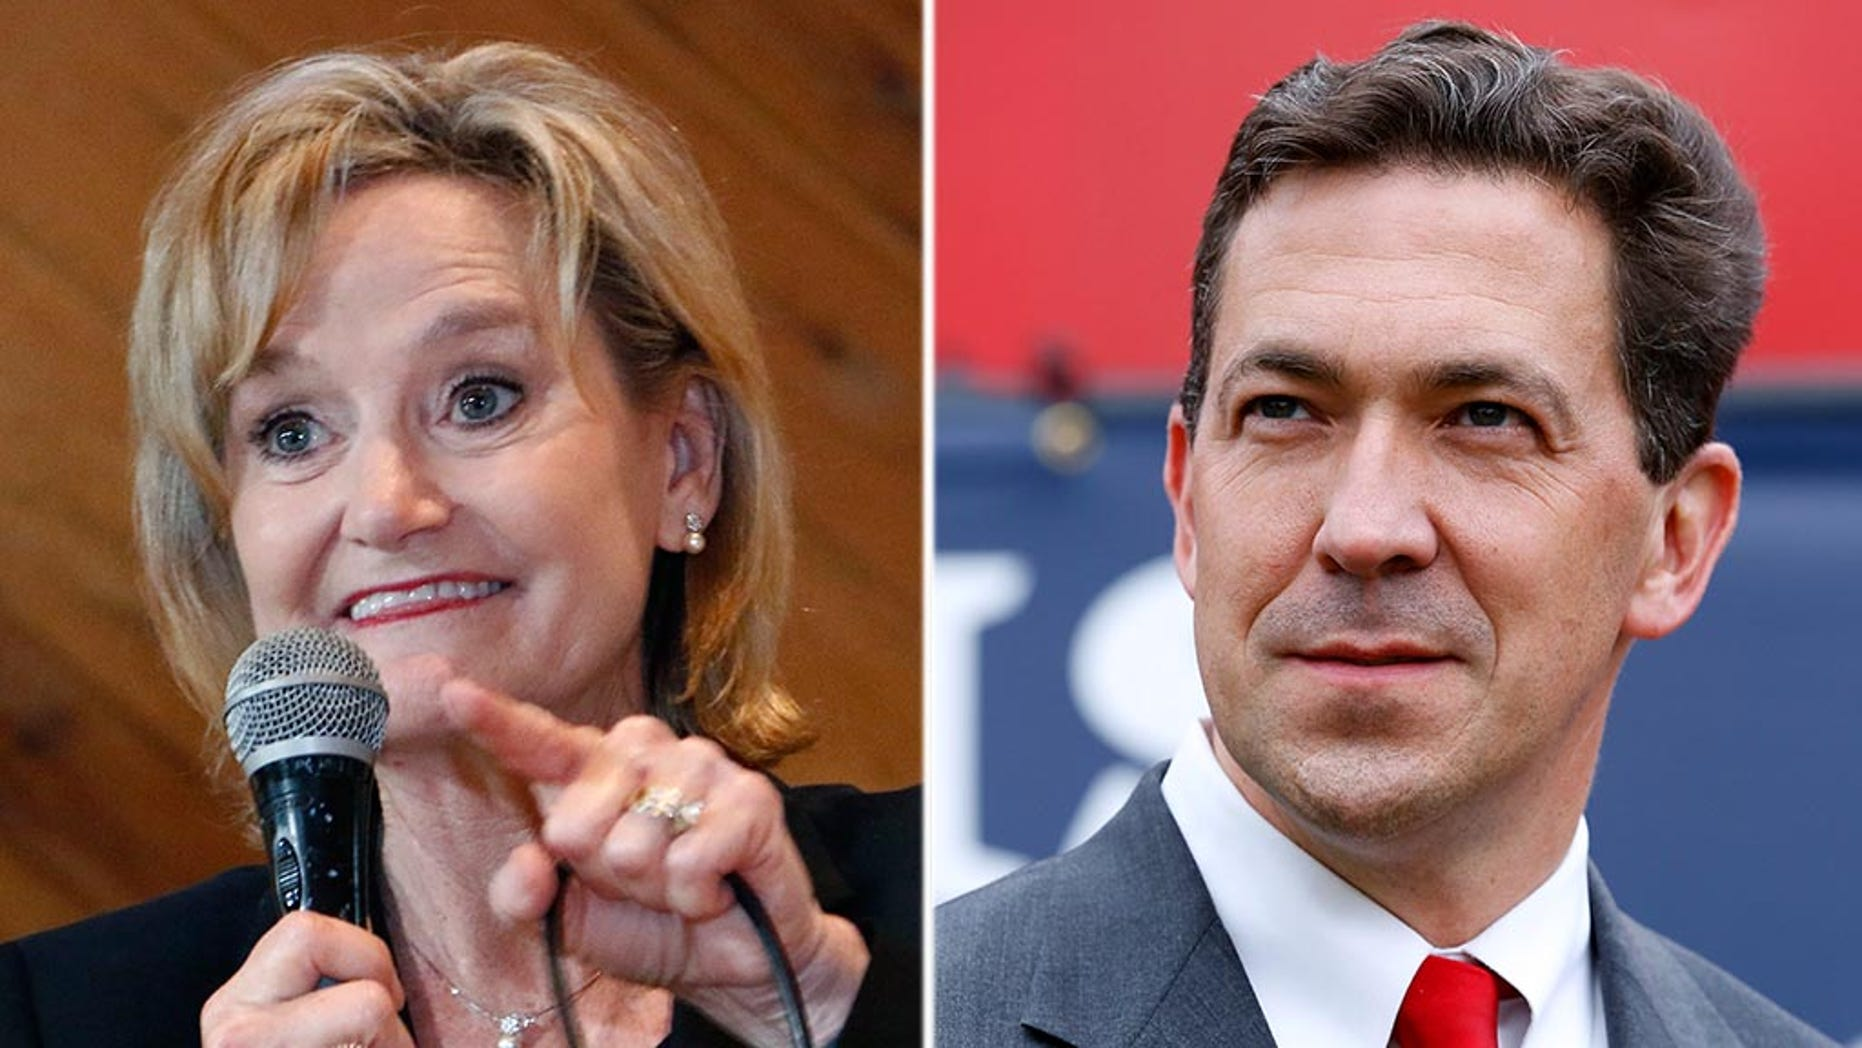 Sen. Cindy Hyde-Smith is hoping for supporters of state Sen. Chris McDaniel to vote for her in Mississippi's run-off election.